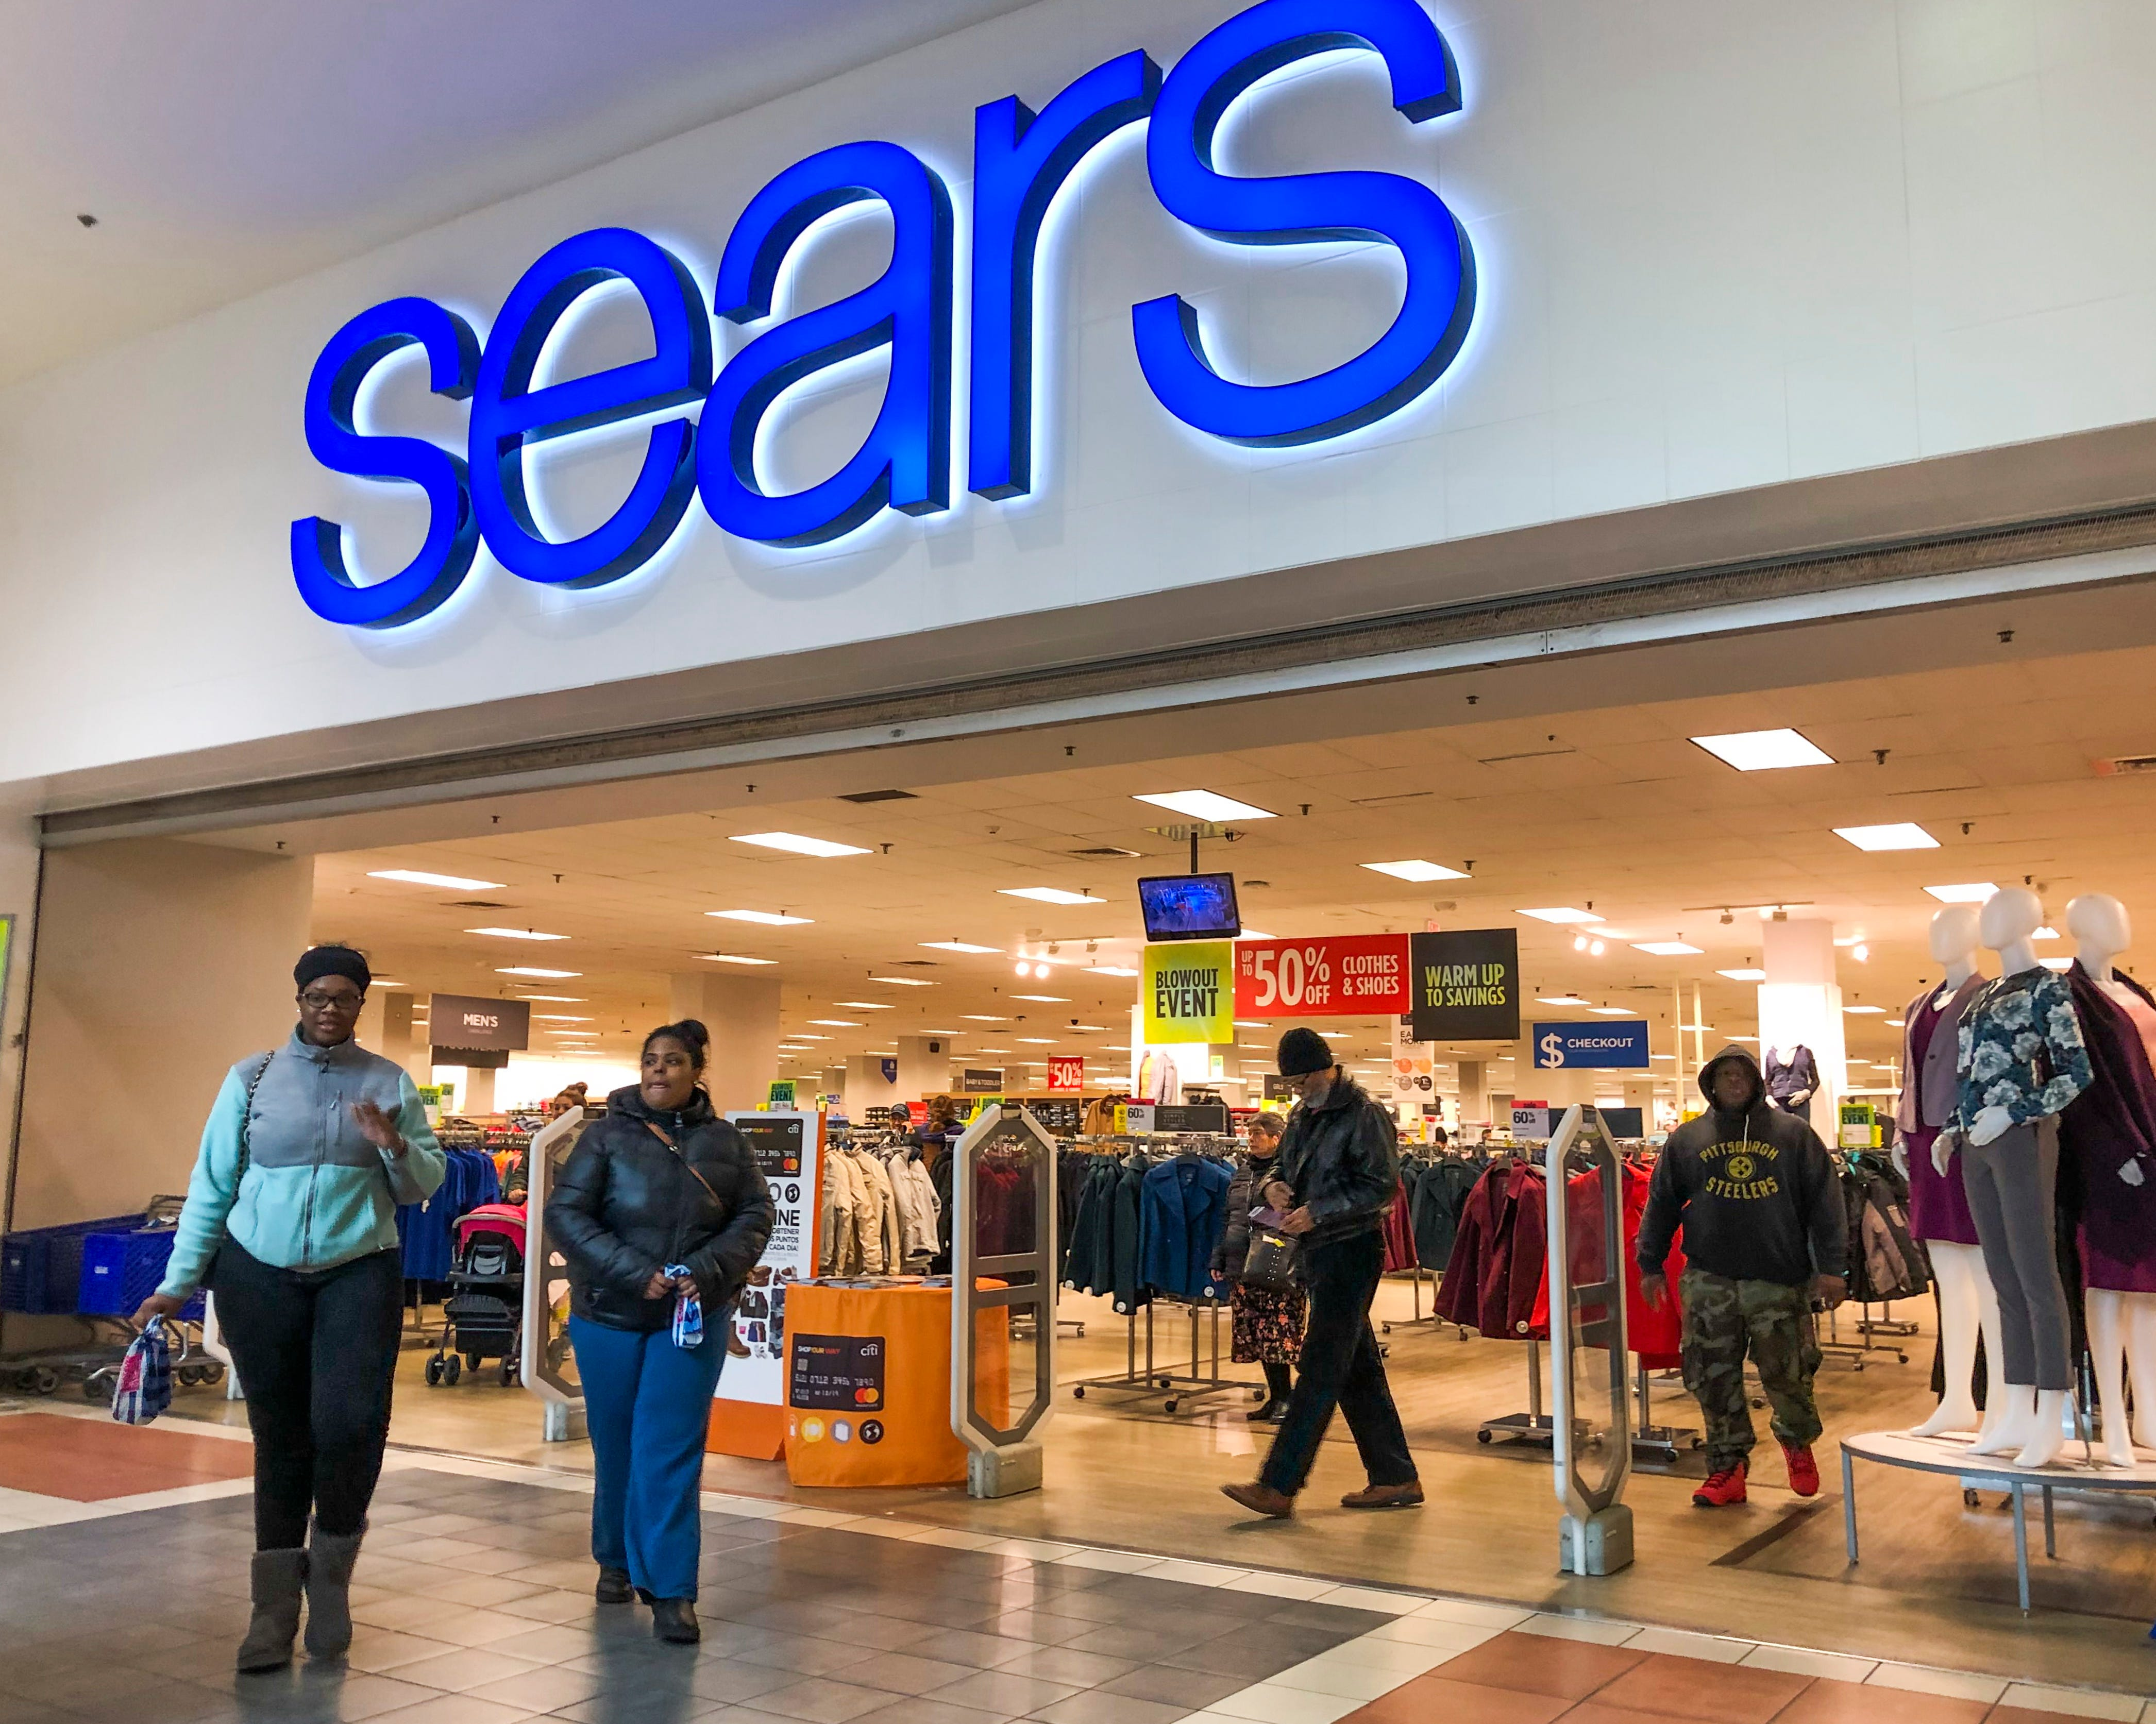 Sears, Kmart to close one-third of stores: 96 locations closing, $250M in financing landed